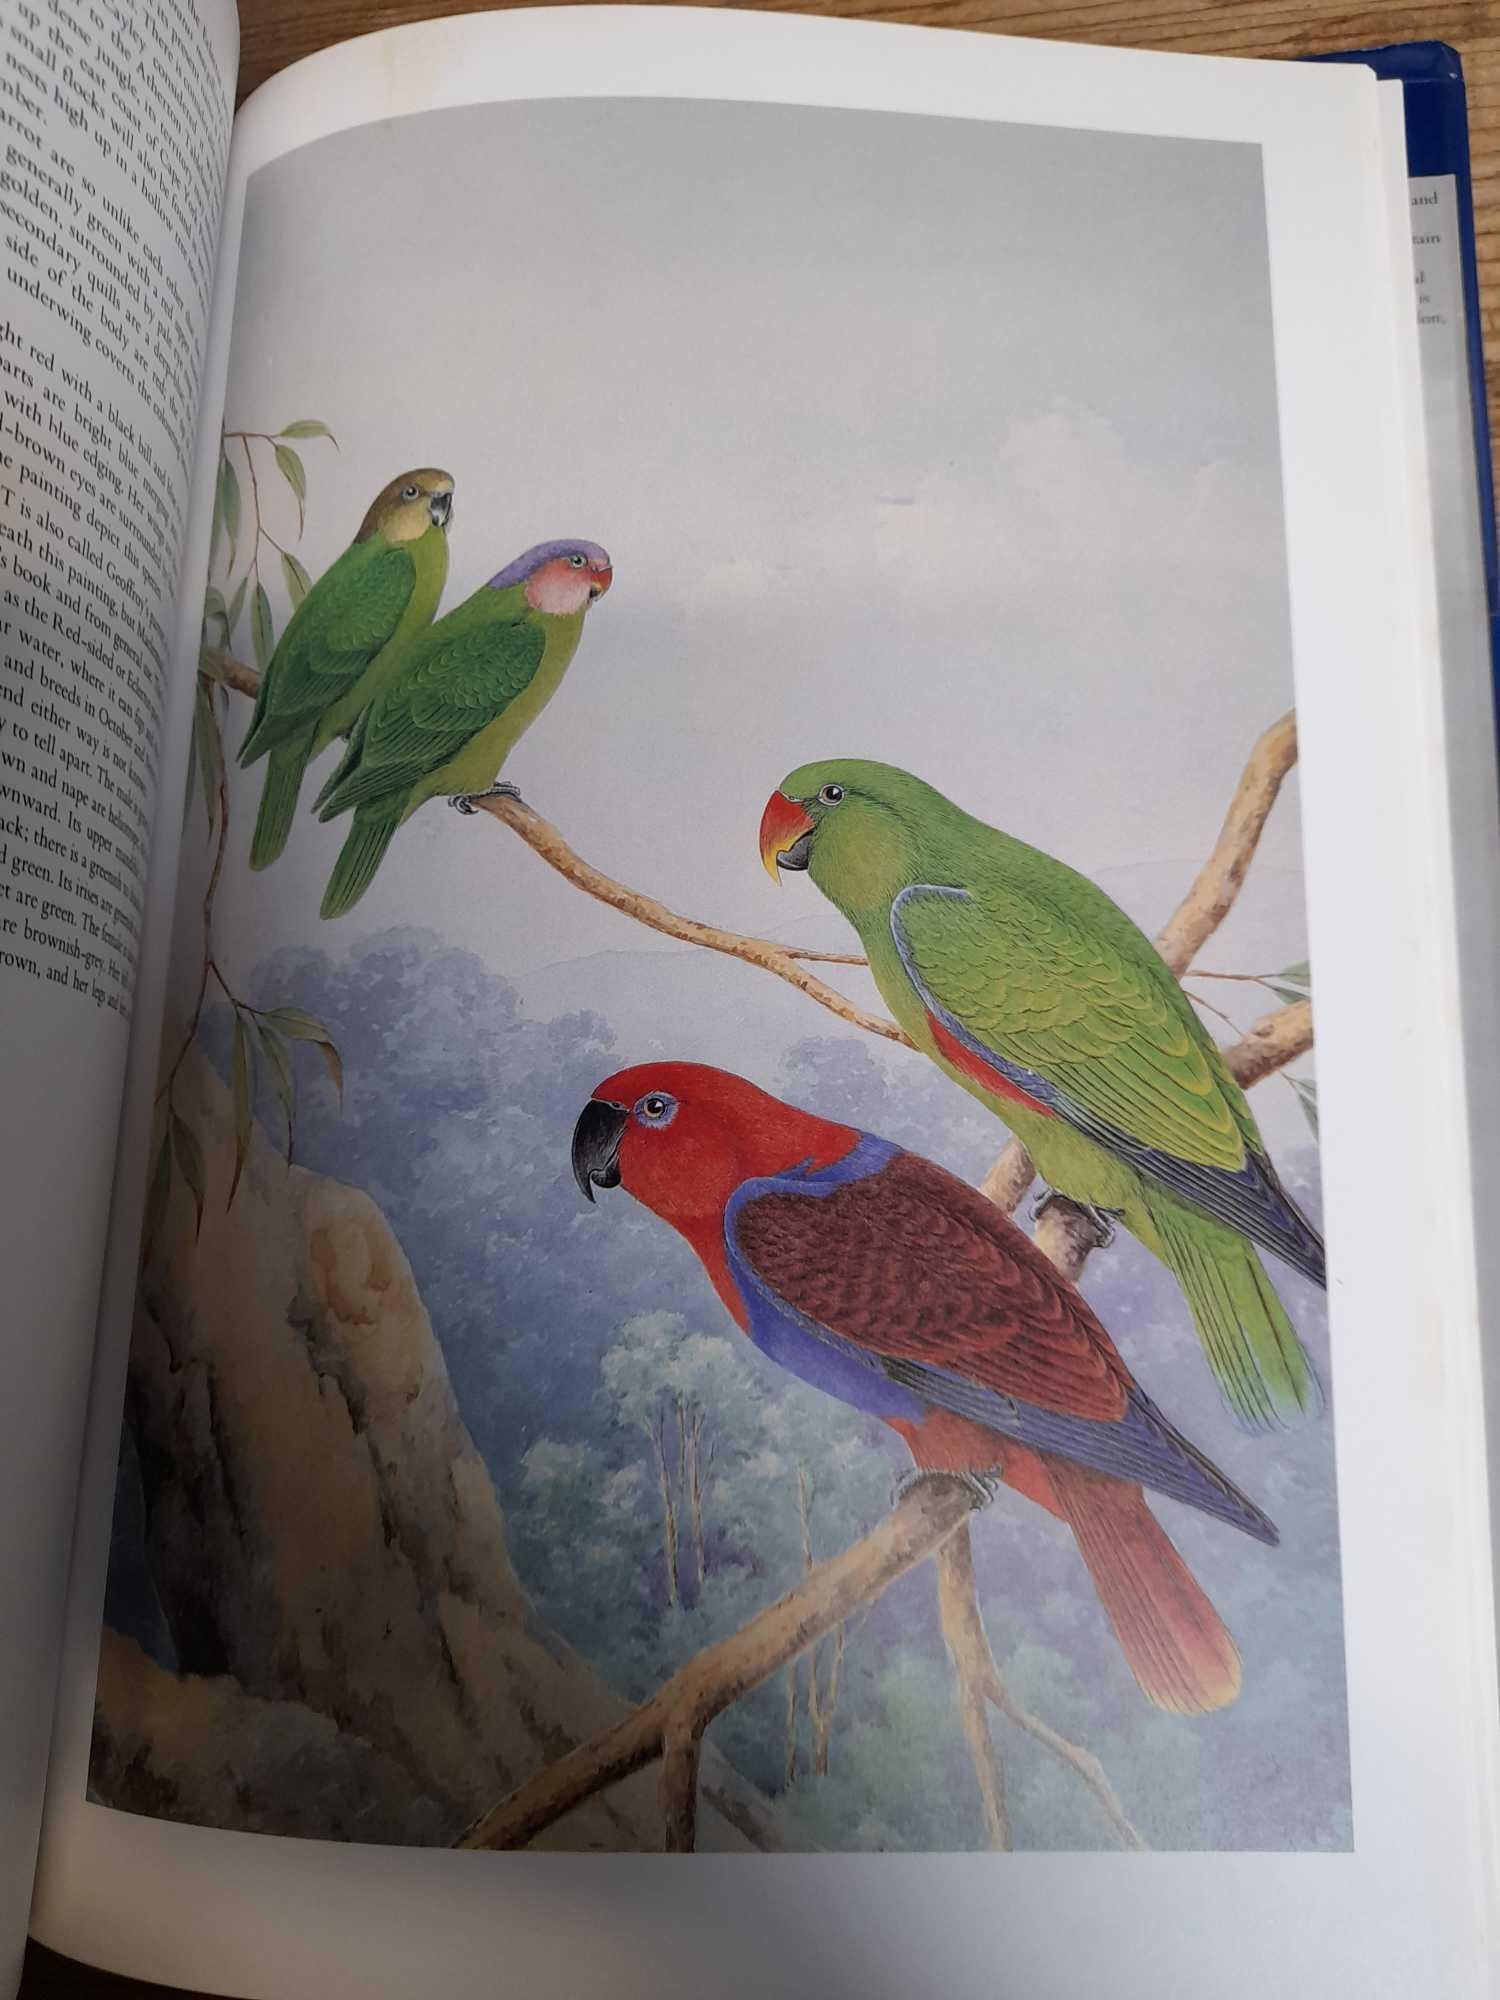 3 PARROT BOOKS - Image 6 of 20